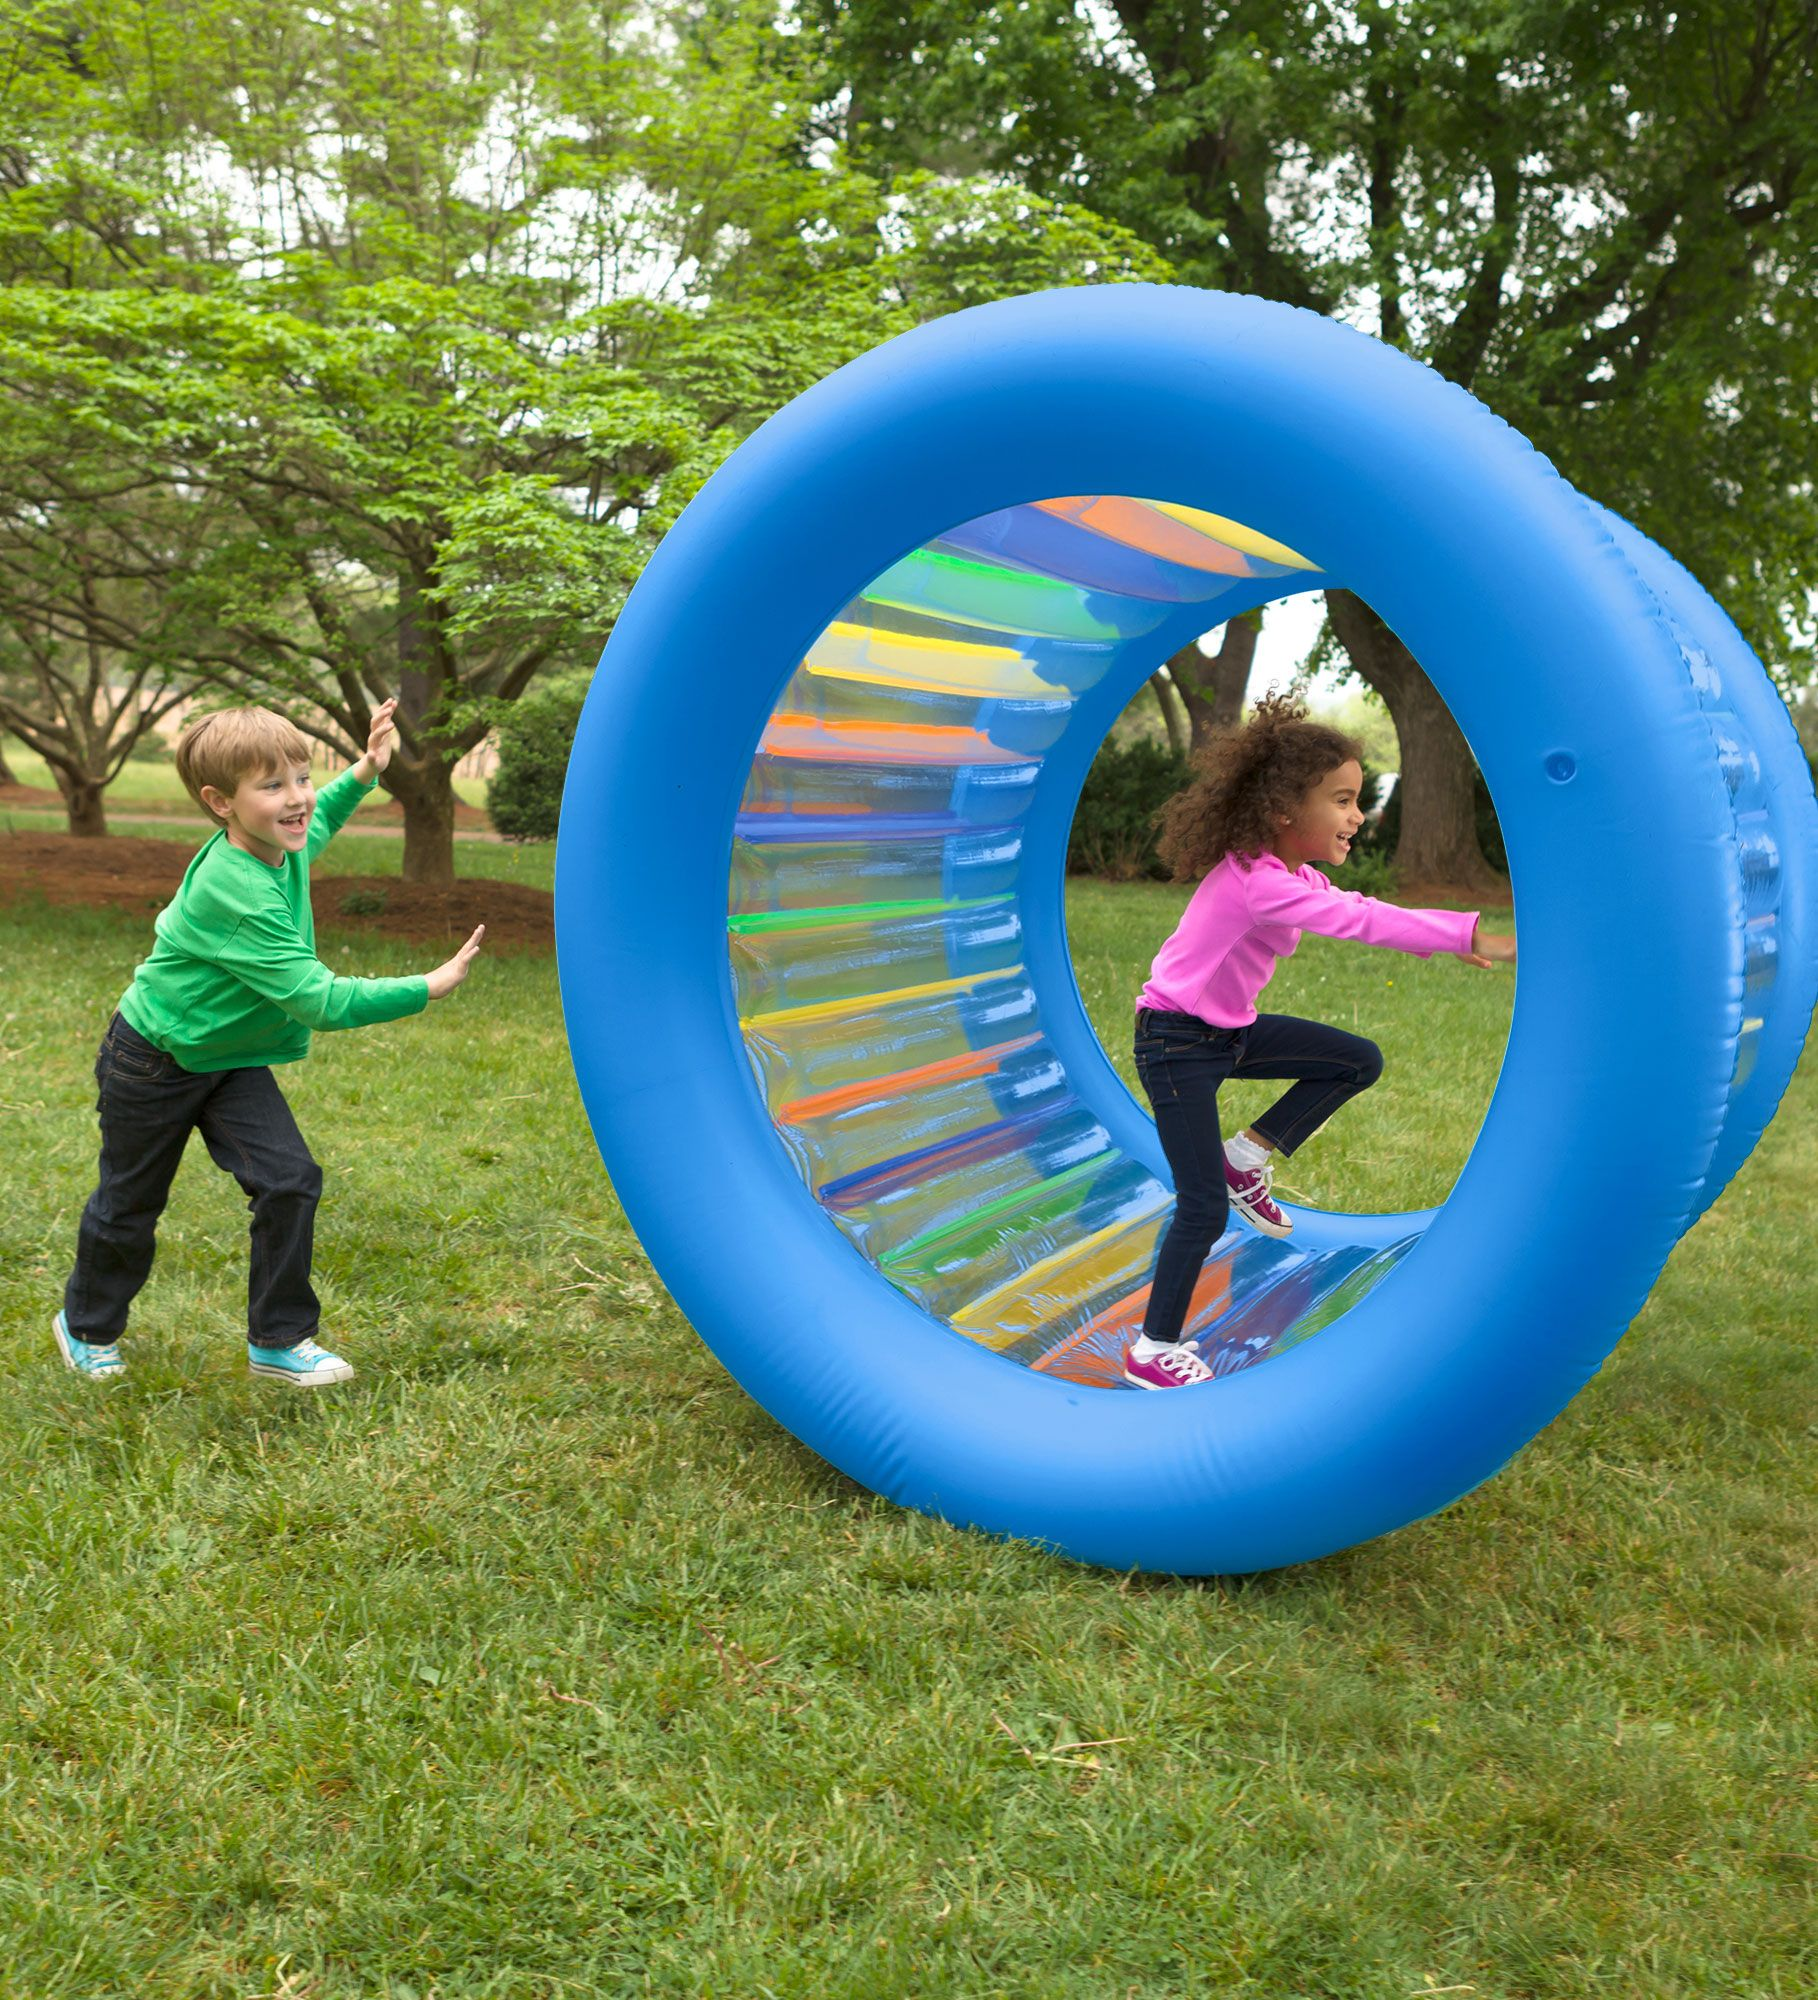 000739f1 Inflatable Land Roller | Giant Inflatable Wheel | HearthSong | Kids ...